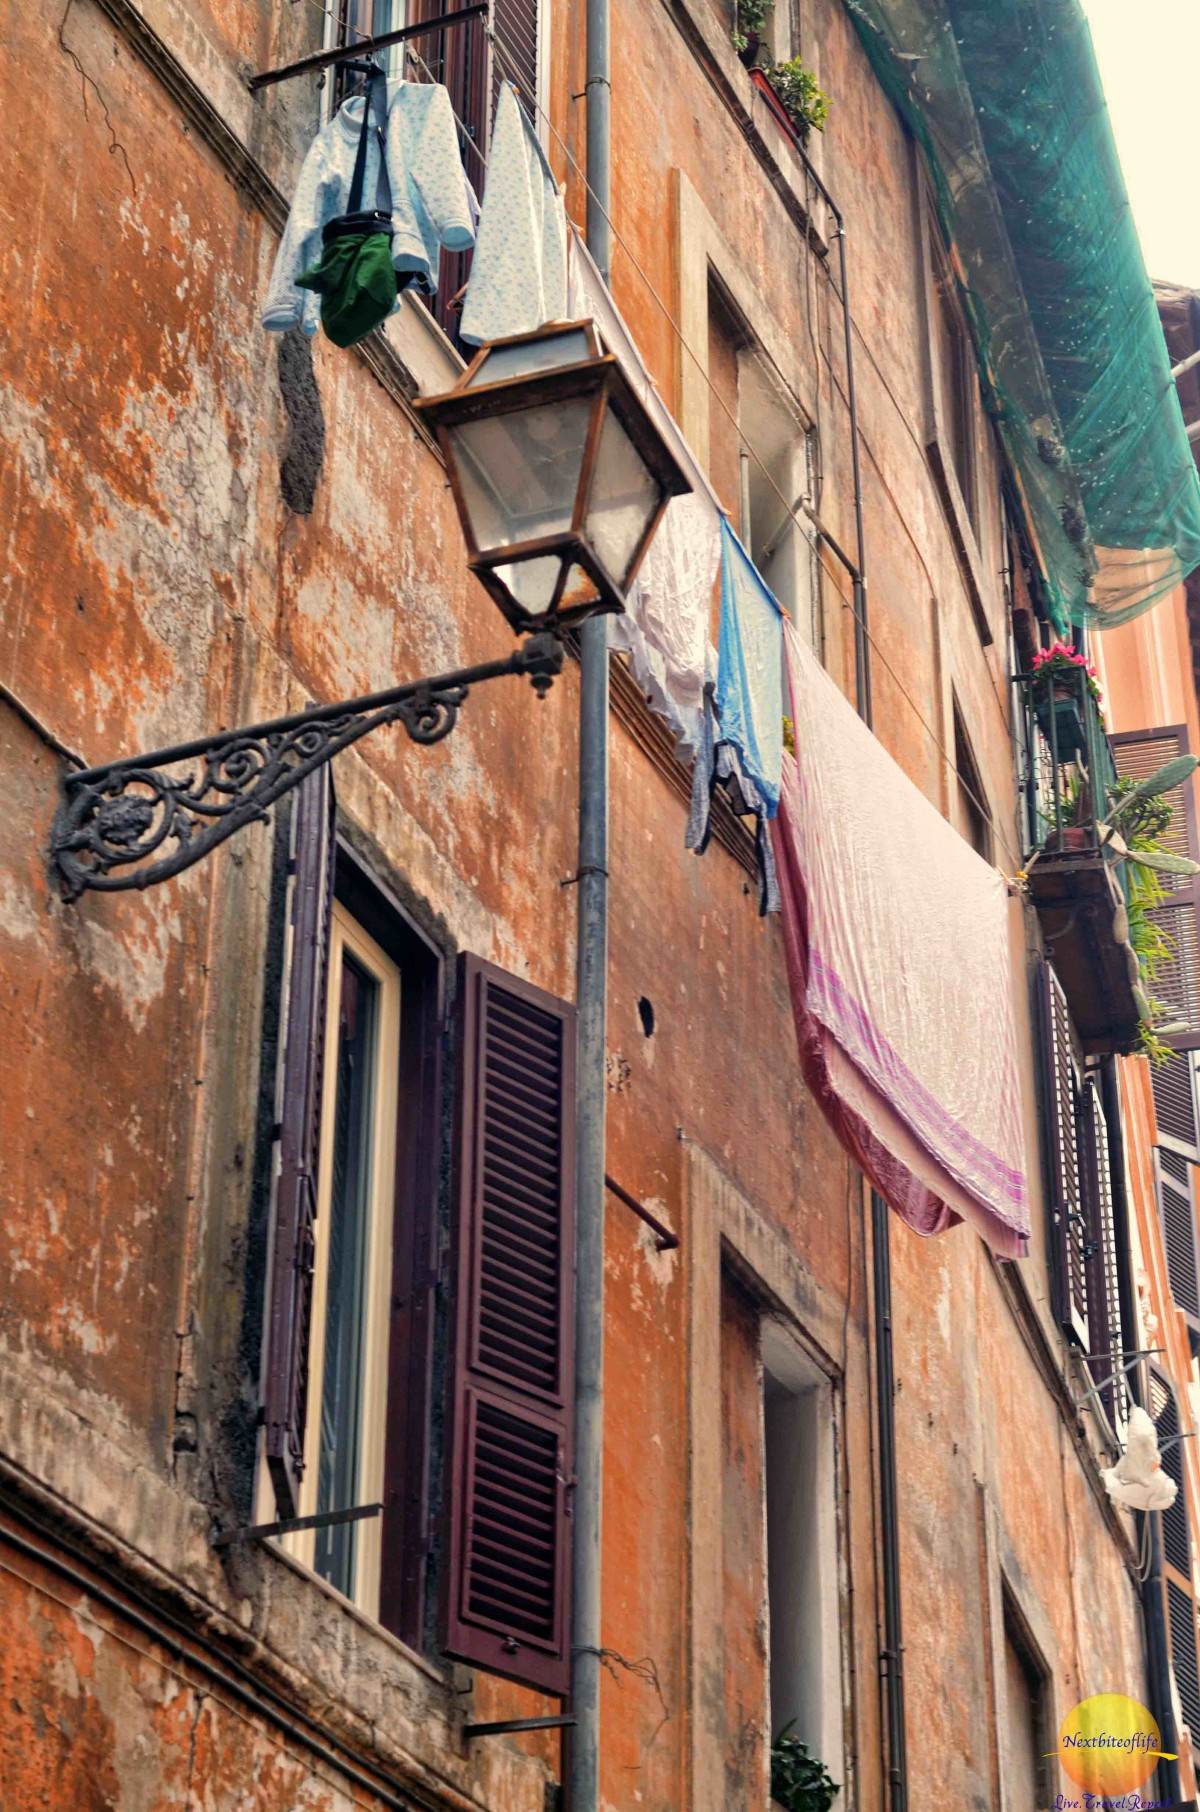 The neighborhood. A familiar sight in Europe, clothes hung out to dry.